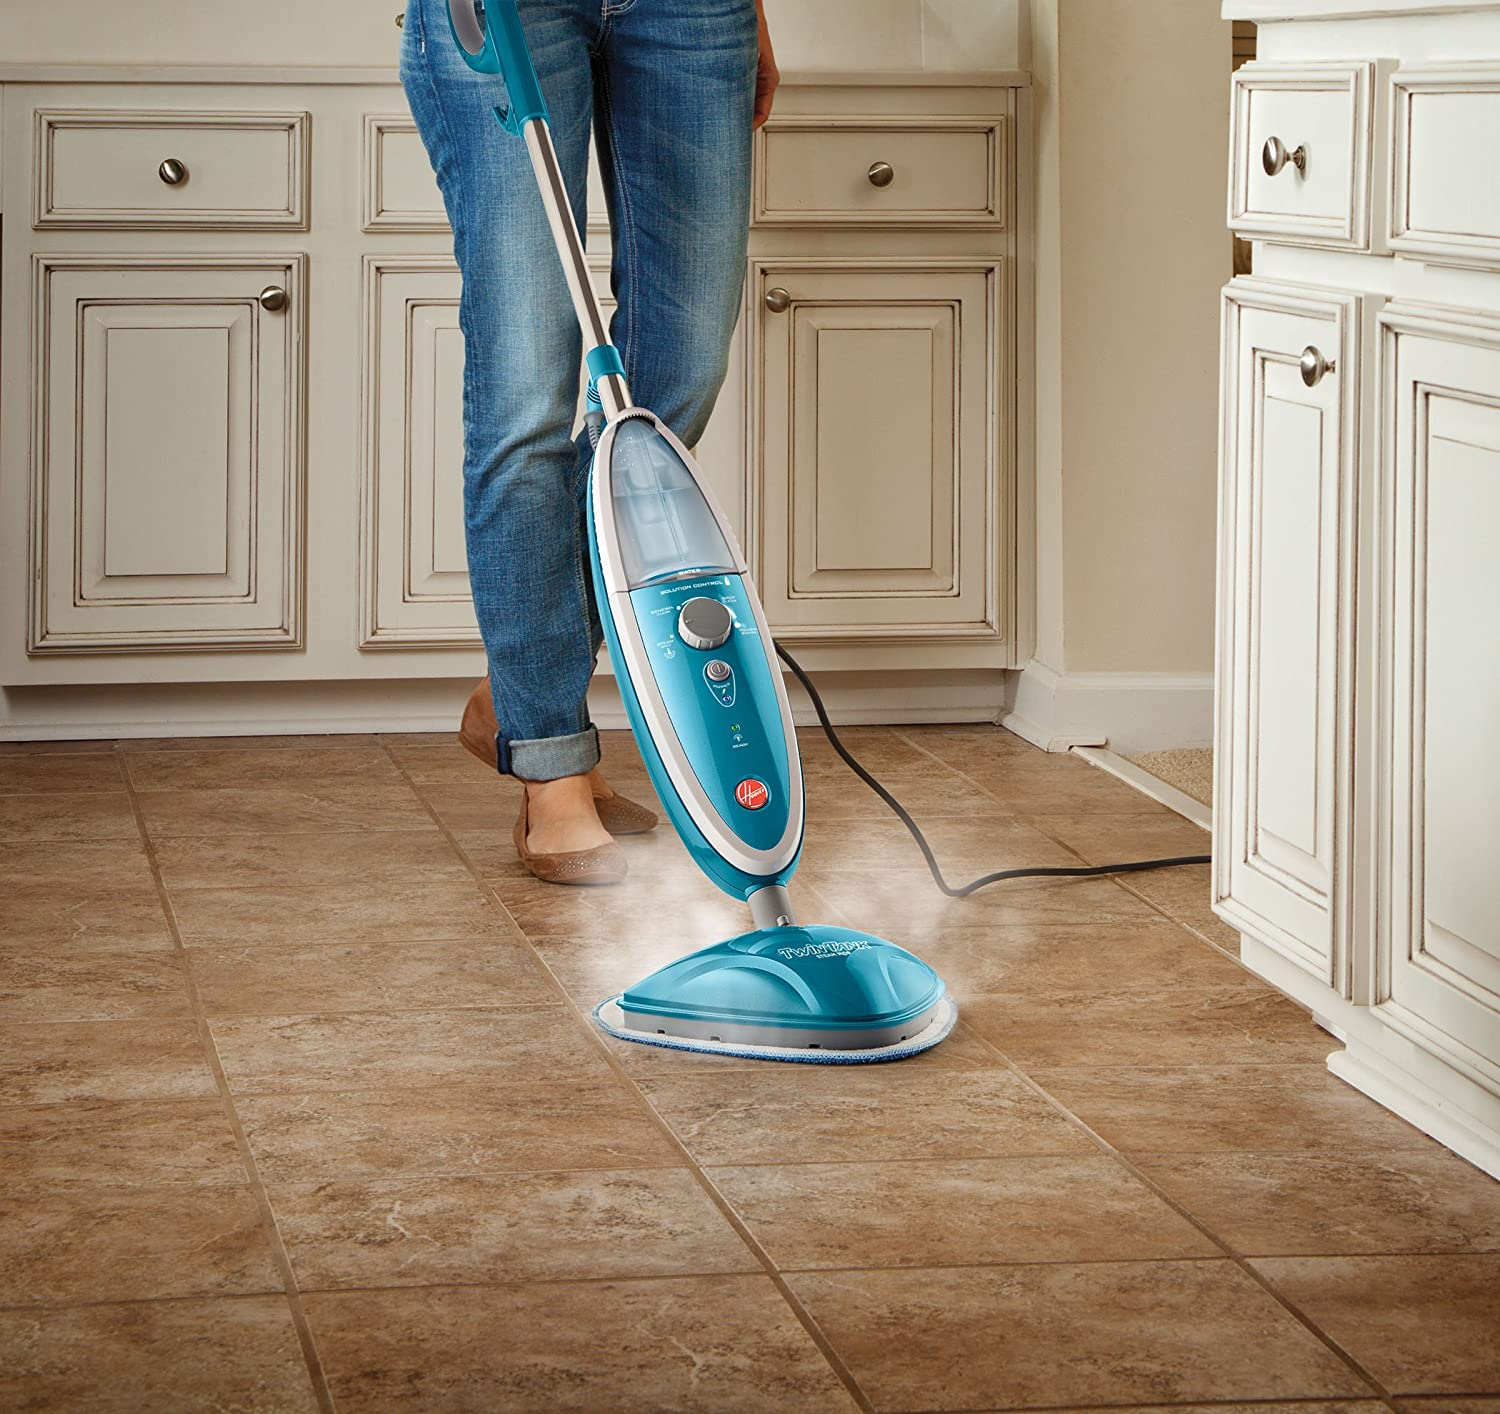 Amazon hoover steam mop twintank steam cleaner wh20200 home amazon hoover steam mop twintank steam cleaner wh20200 home kitchen dailygadgetfo Gallery